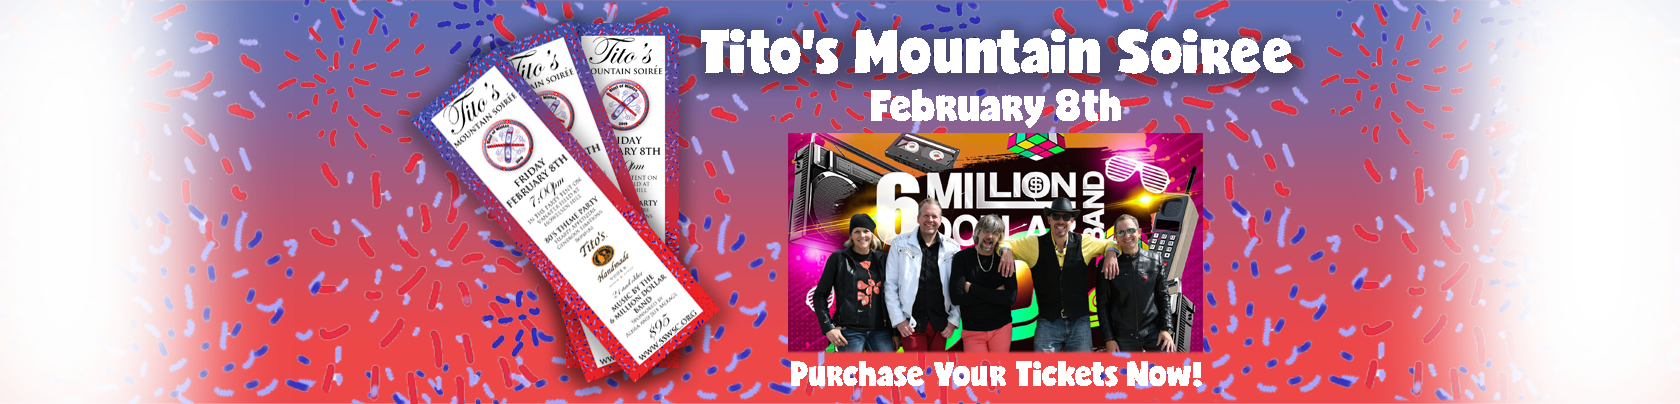 Tito's Mountain Soiree